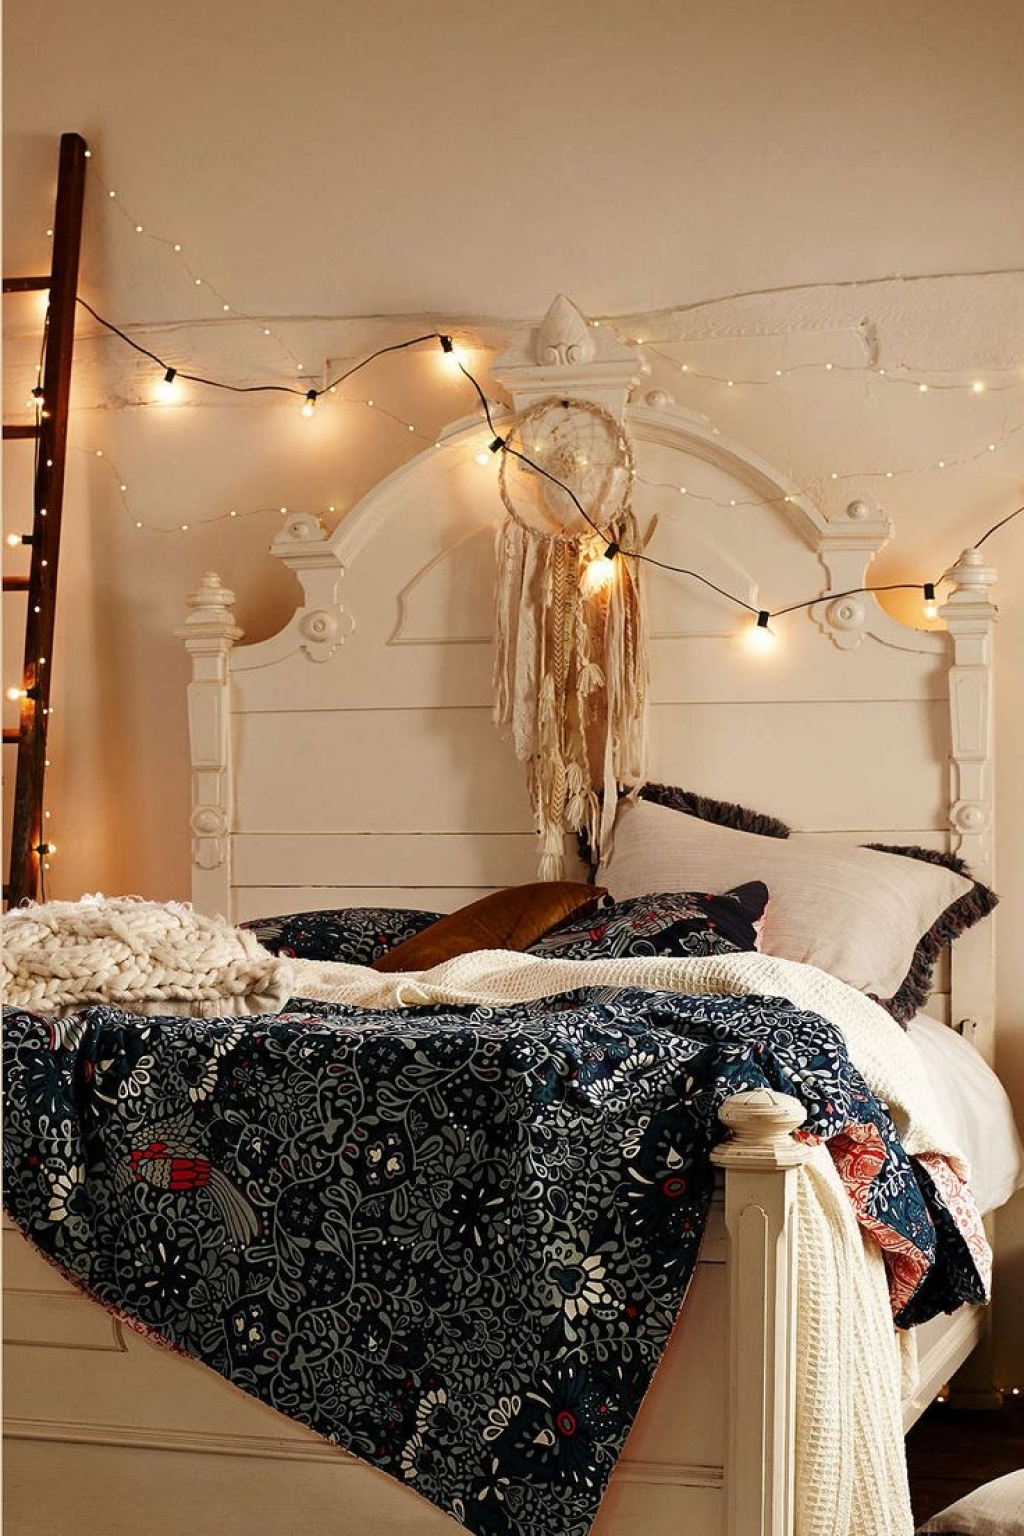 decorating bedroom with lights 30 ways to create a ambiance with string lights 15100